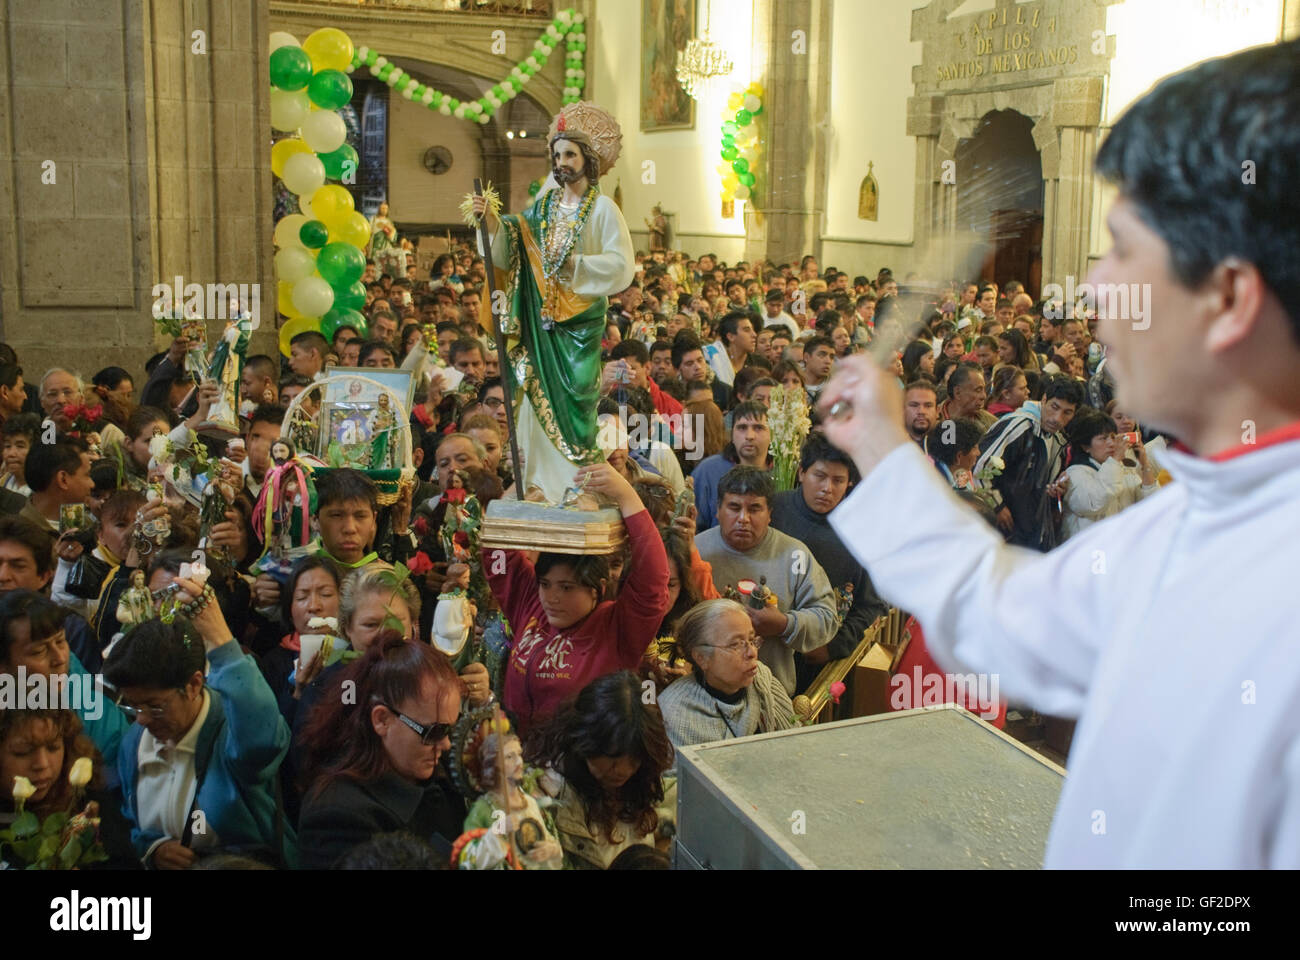 Worshipers with statues and other articles of devotion to Saint Jude Thaddeus, assist at a Mass in Mexico City. - Stock Image